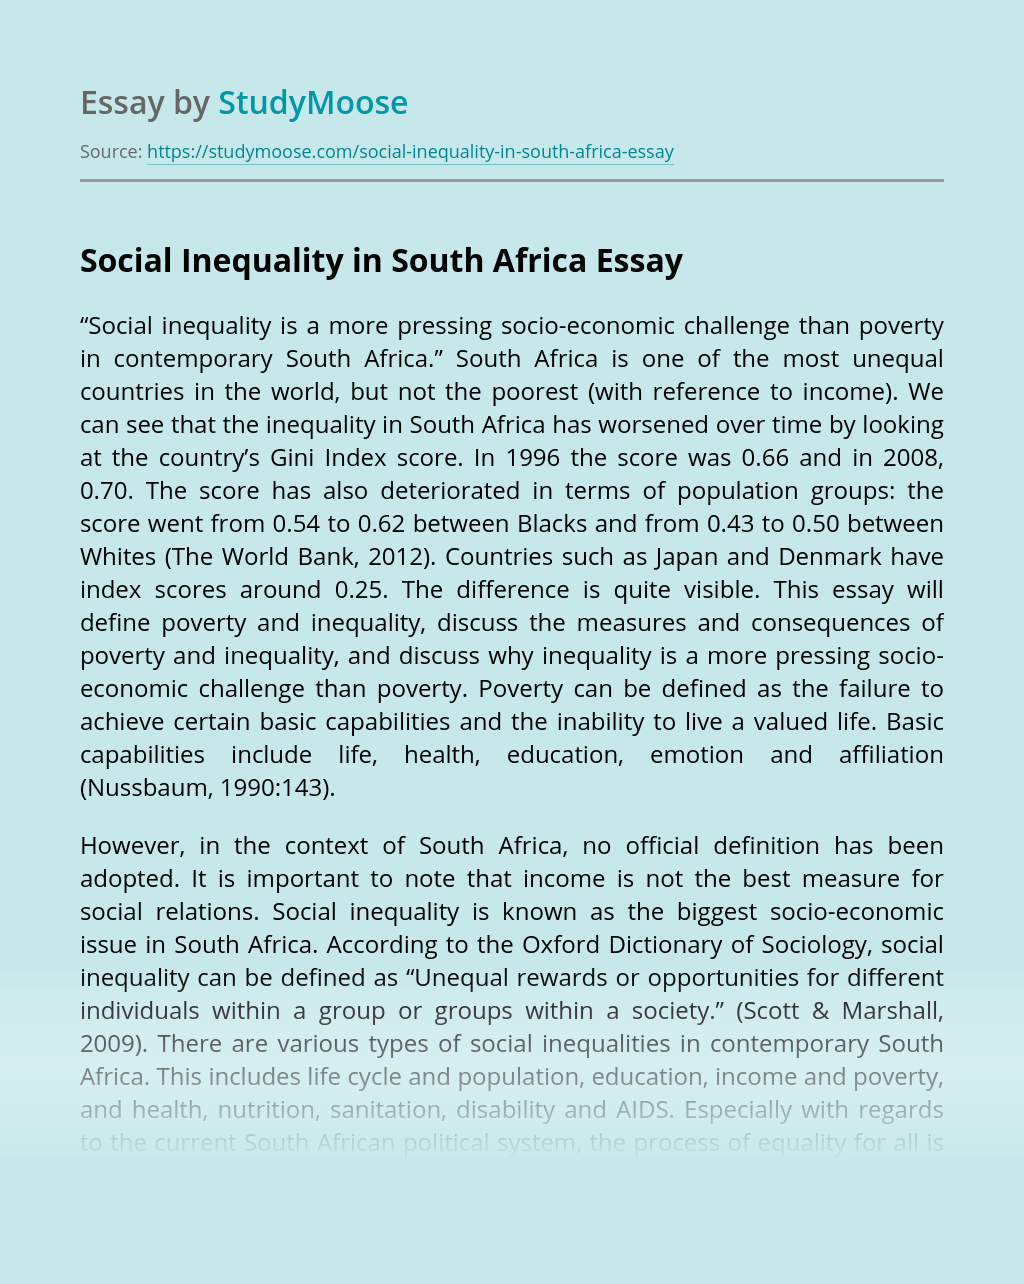 Social Inequality in South Africa